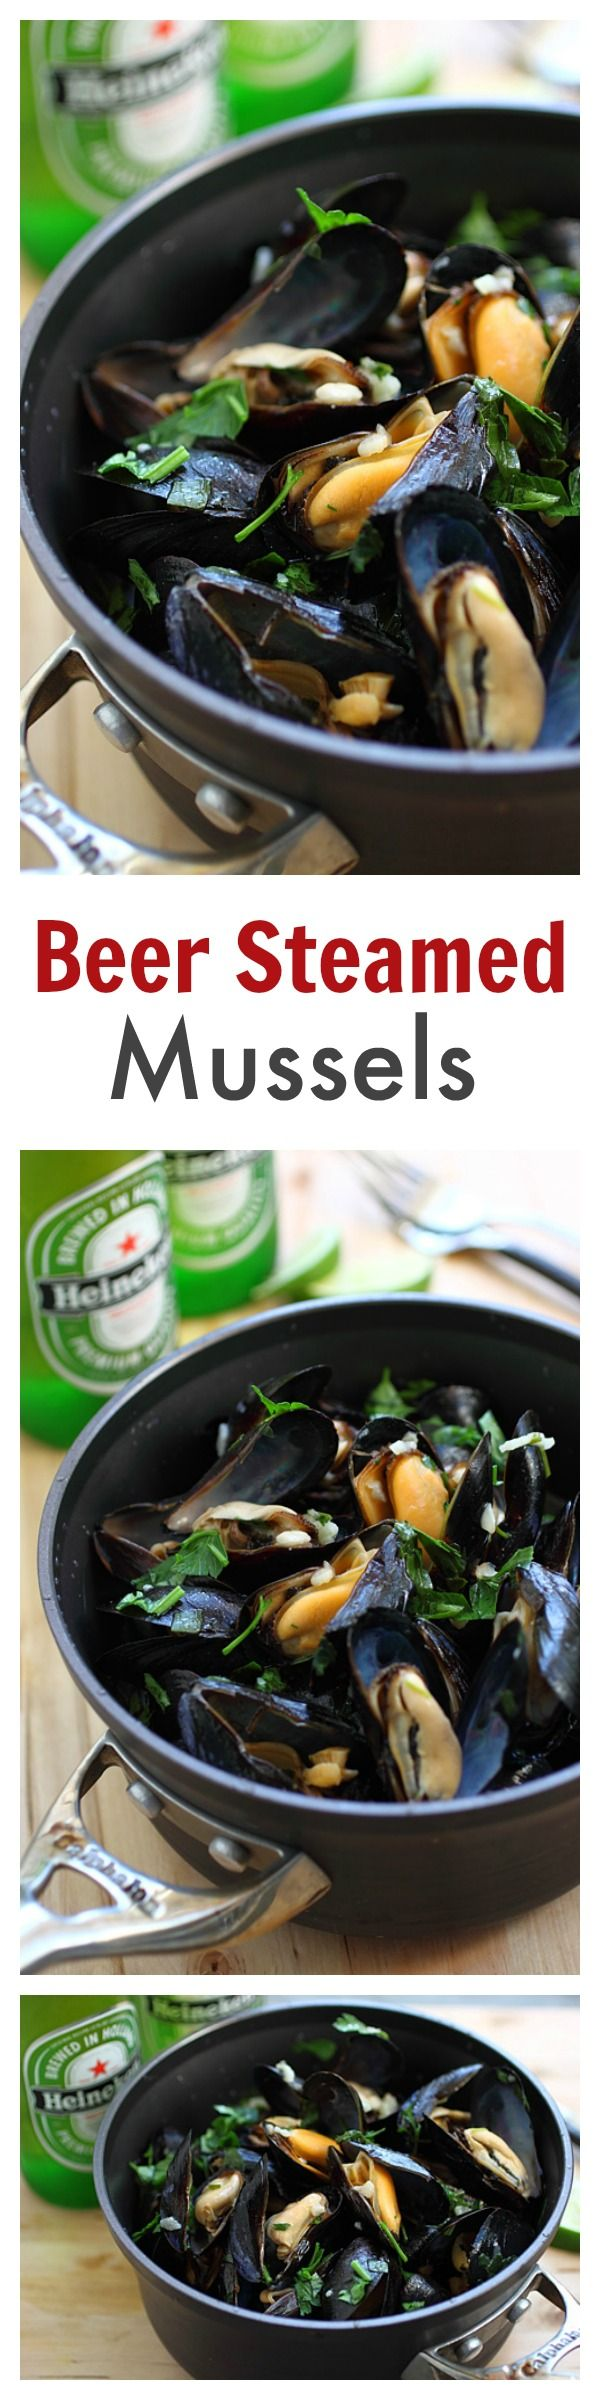 July 4th - Beer Steamed Mussels - DELICIOUS mussels cooked with beer and garlic herb. So good, MUCH cheaper than restaurants and ready in 10 mins | rasamalaysia.com